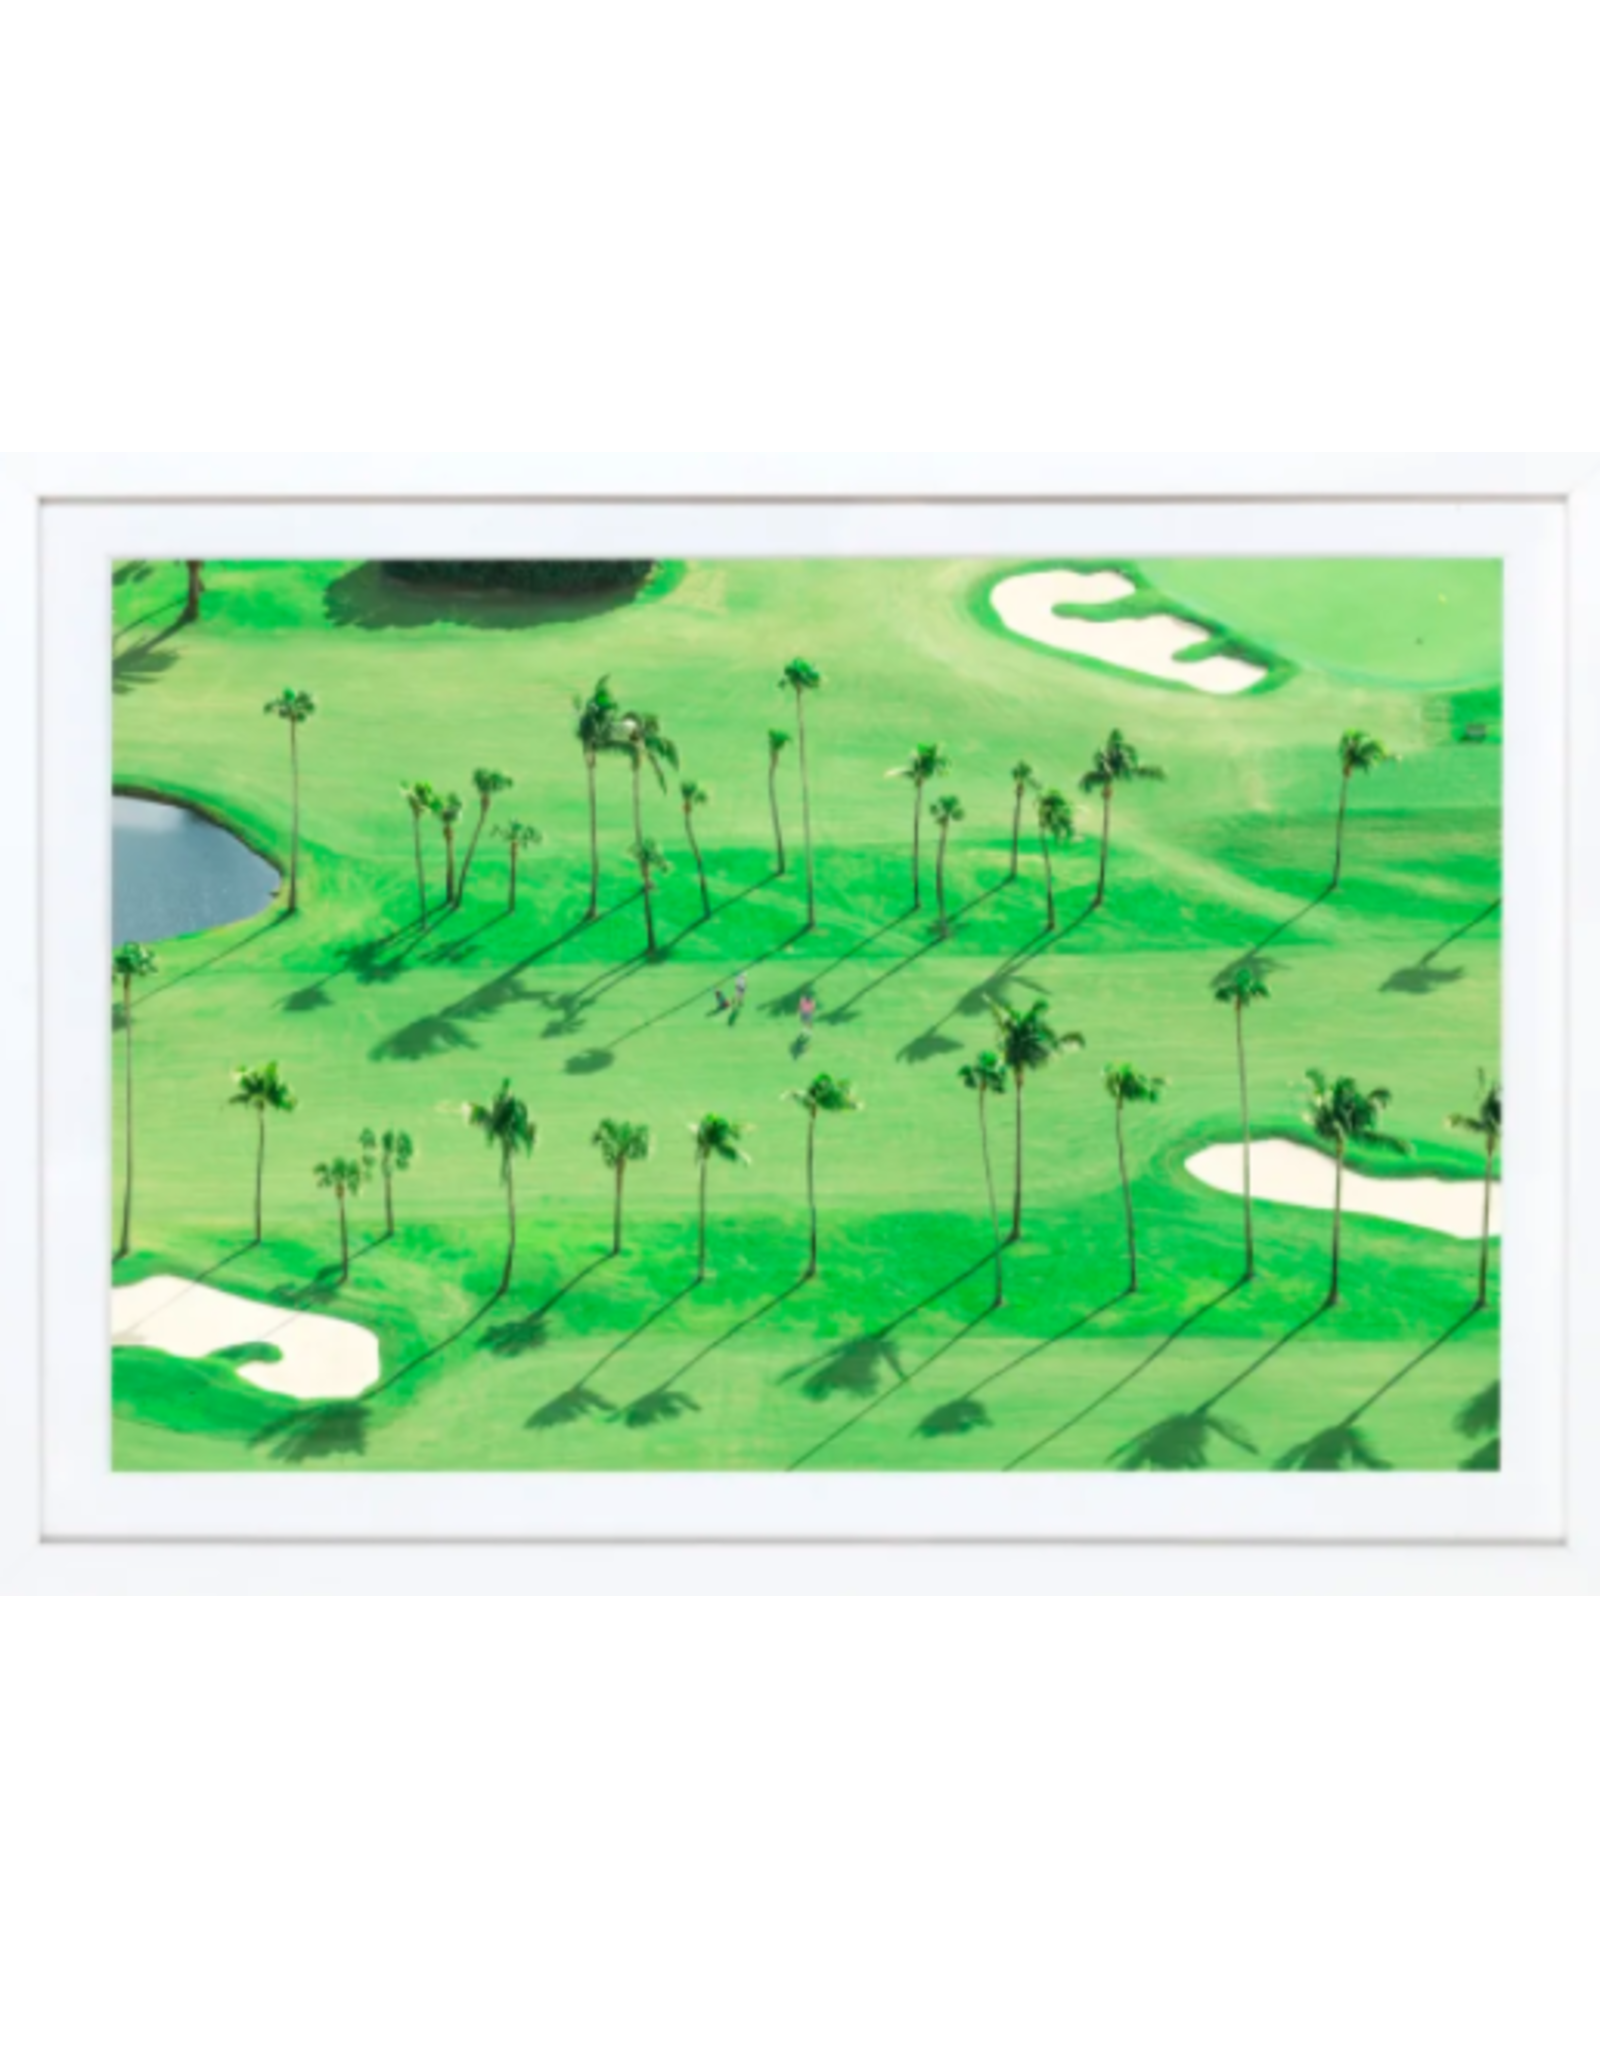 Gray Malin The Golfers Palm Beach Mini by Gray Malin 10x13.5